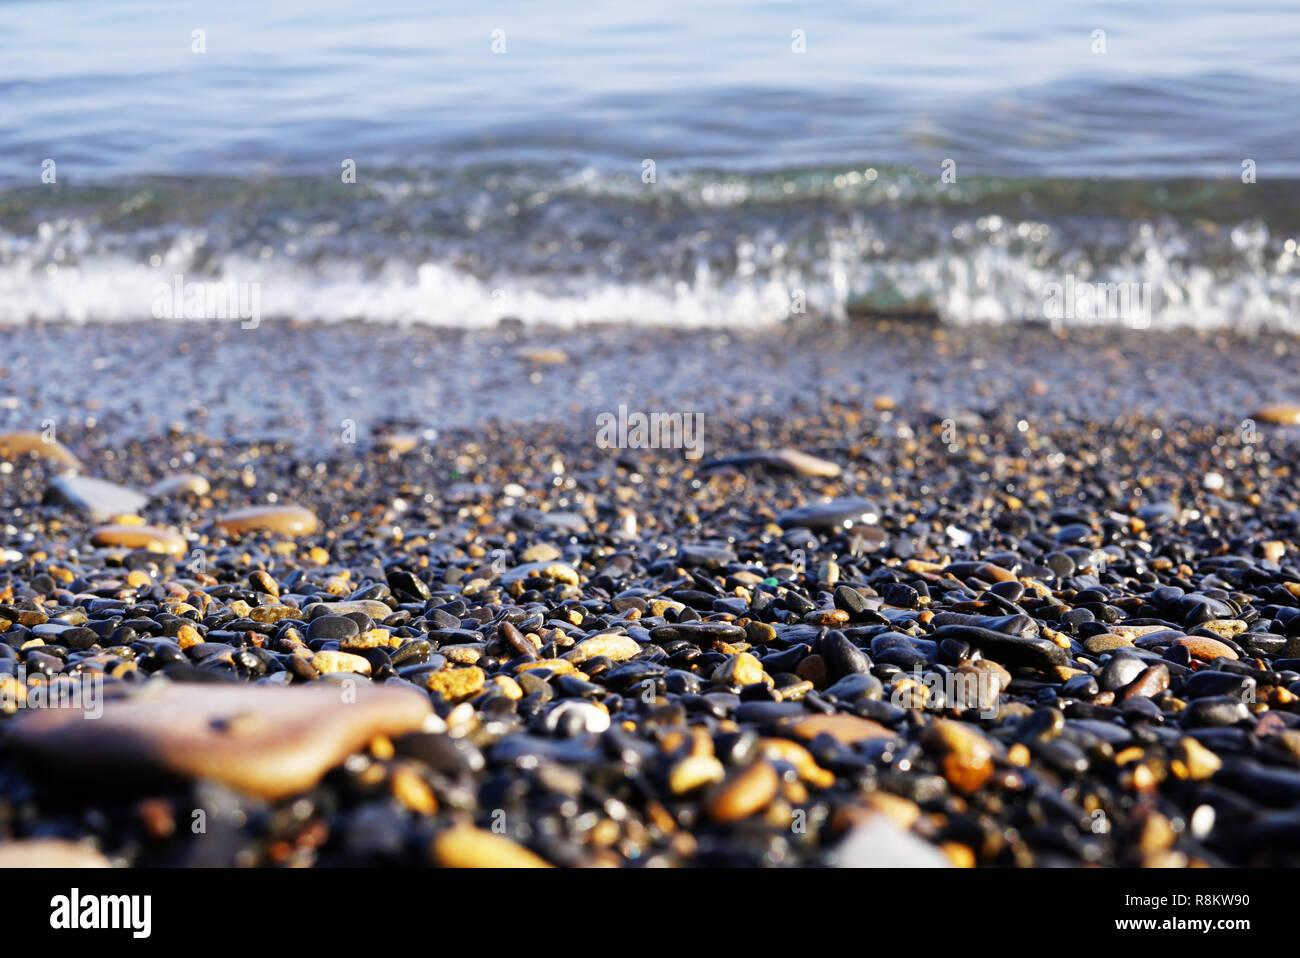 On the seashore there are many small stones of different shapes. sea surf and waves visible behind sea pebbles. Far East of Russia, Vladivostok - Stock Image